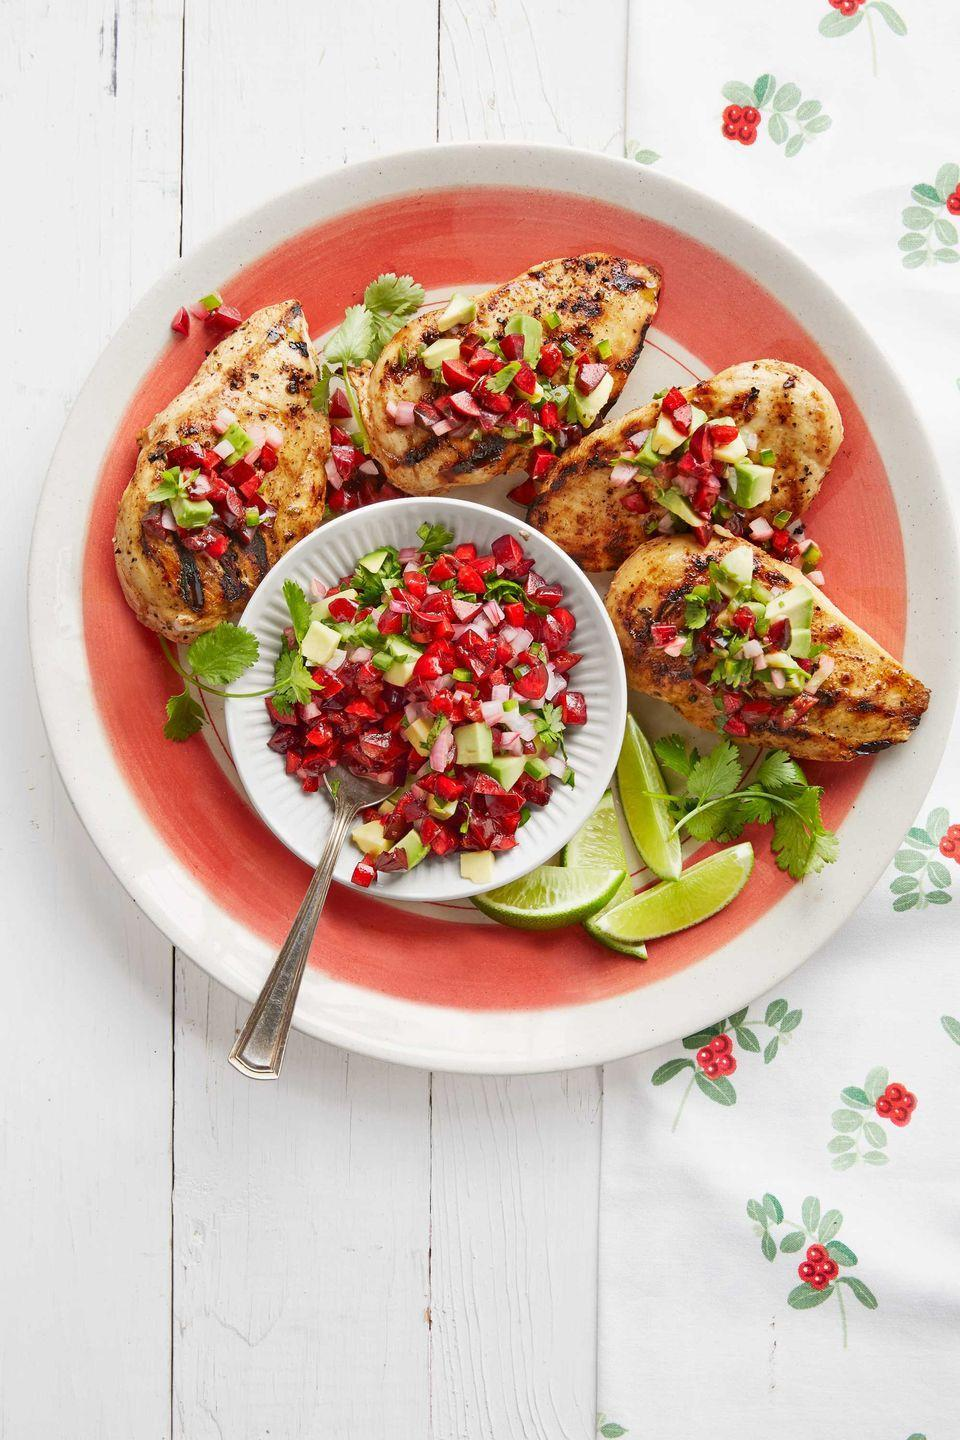 """<p>Grilled chicken gets a lift with this flavor-packed marinade and fresh, fruity salsa.</p><p><strong><a href=""""https://www.countryliving.com/food-drinks/recipes/a38958/chili-garlic-grilled-chicken-with-avocado-cherry-salsa-recipe/"""" rel=""""nofollow noopener"""" target=""""_blank"""" data-ylk=""""slk:Get the recipe"""" class=""""link rapid-noclick-resp"""">Get the recipe</a>.</strong></p>"""